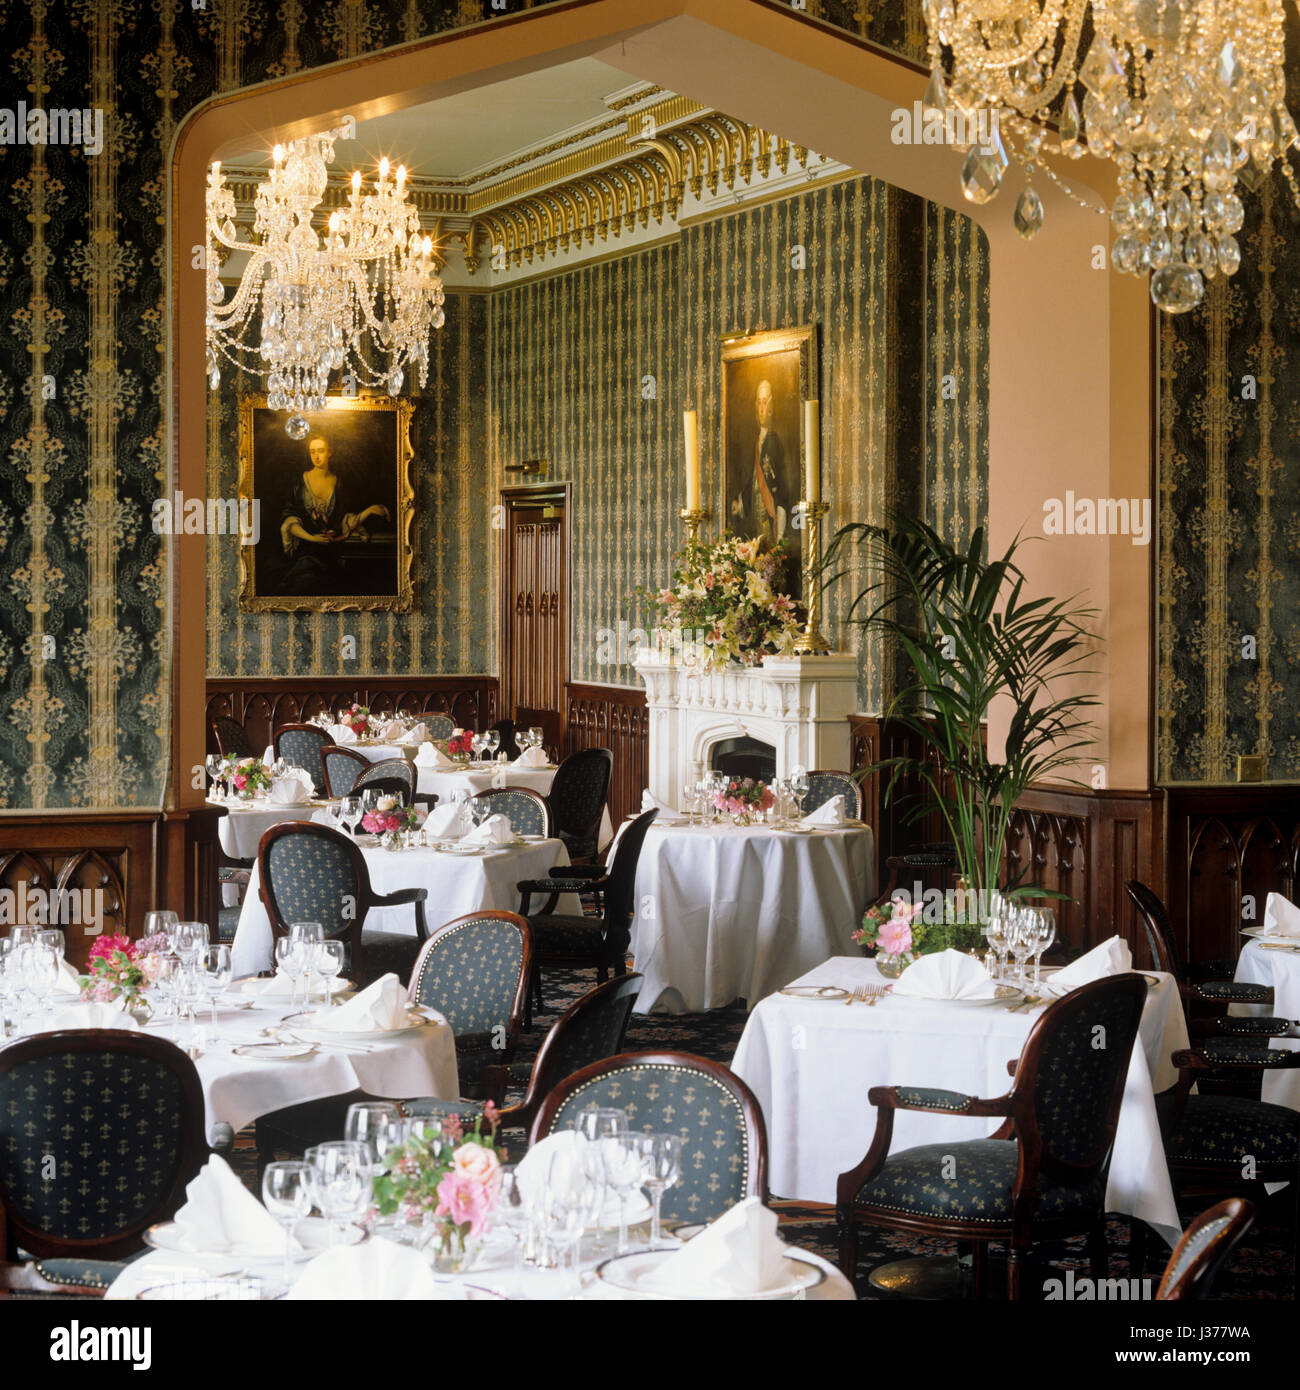 Victorian Style Dining Room: Victorian Dining Room Stock Photos & Victorian Dining Room